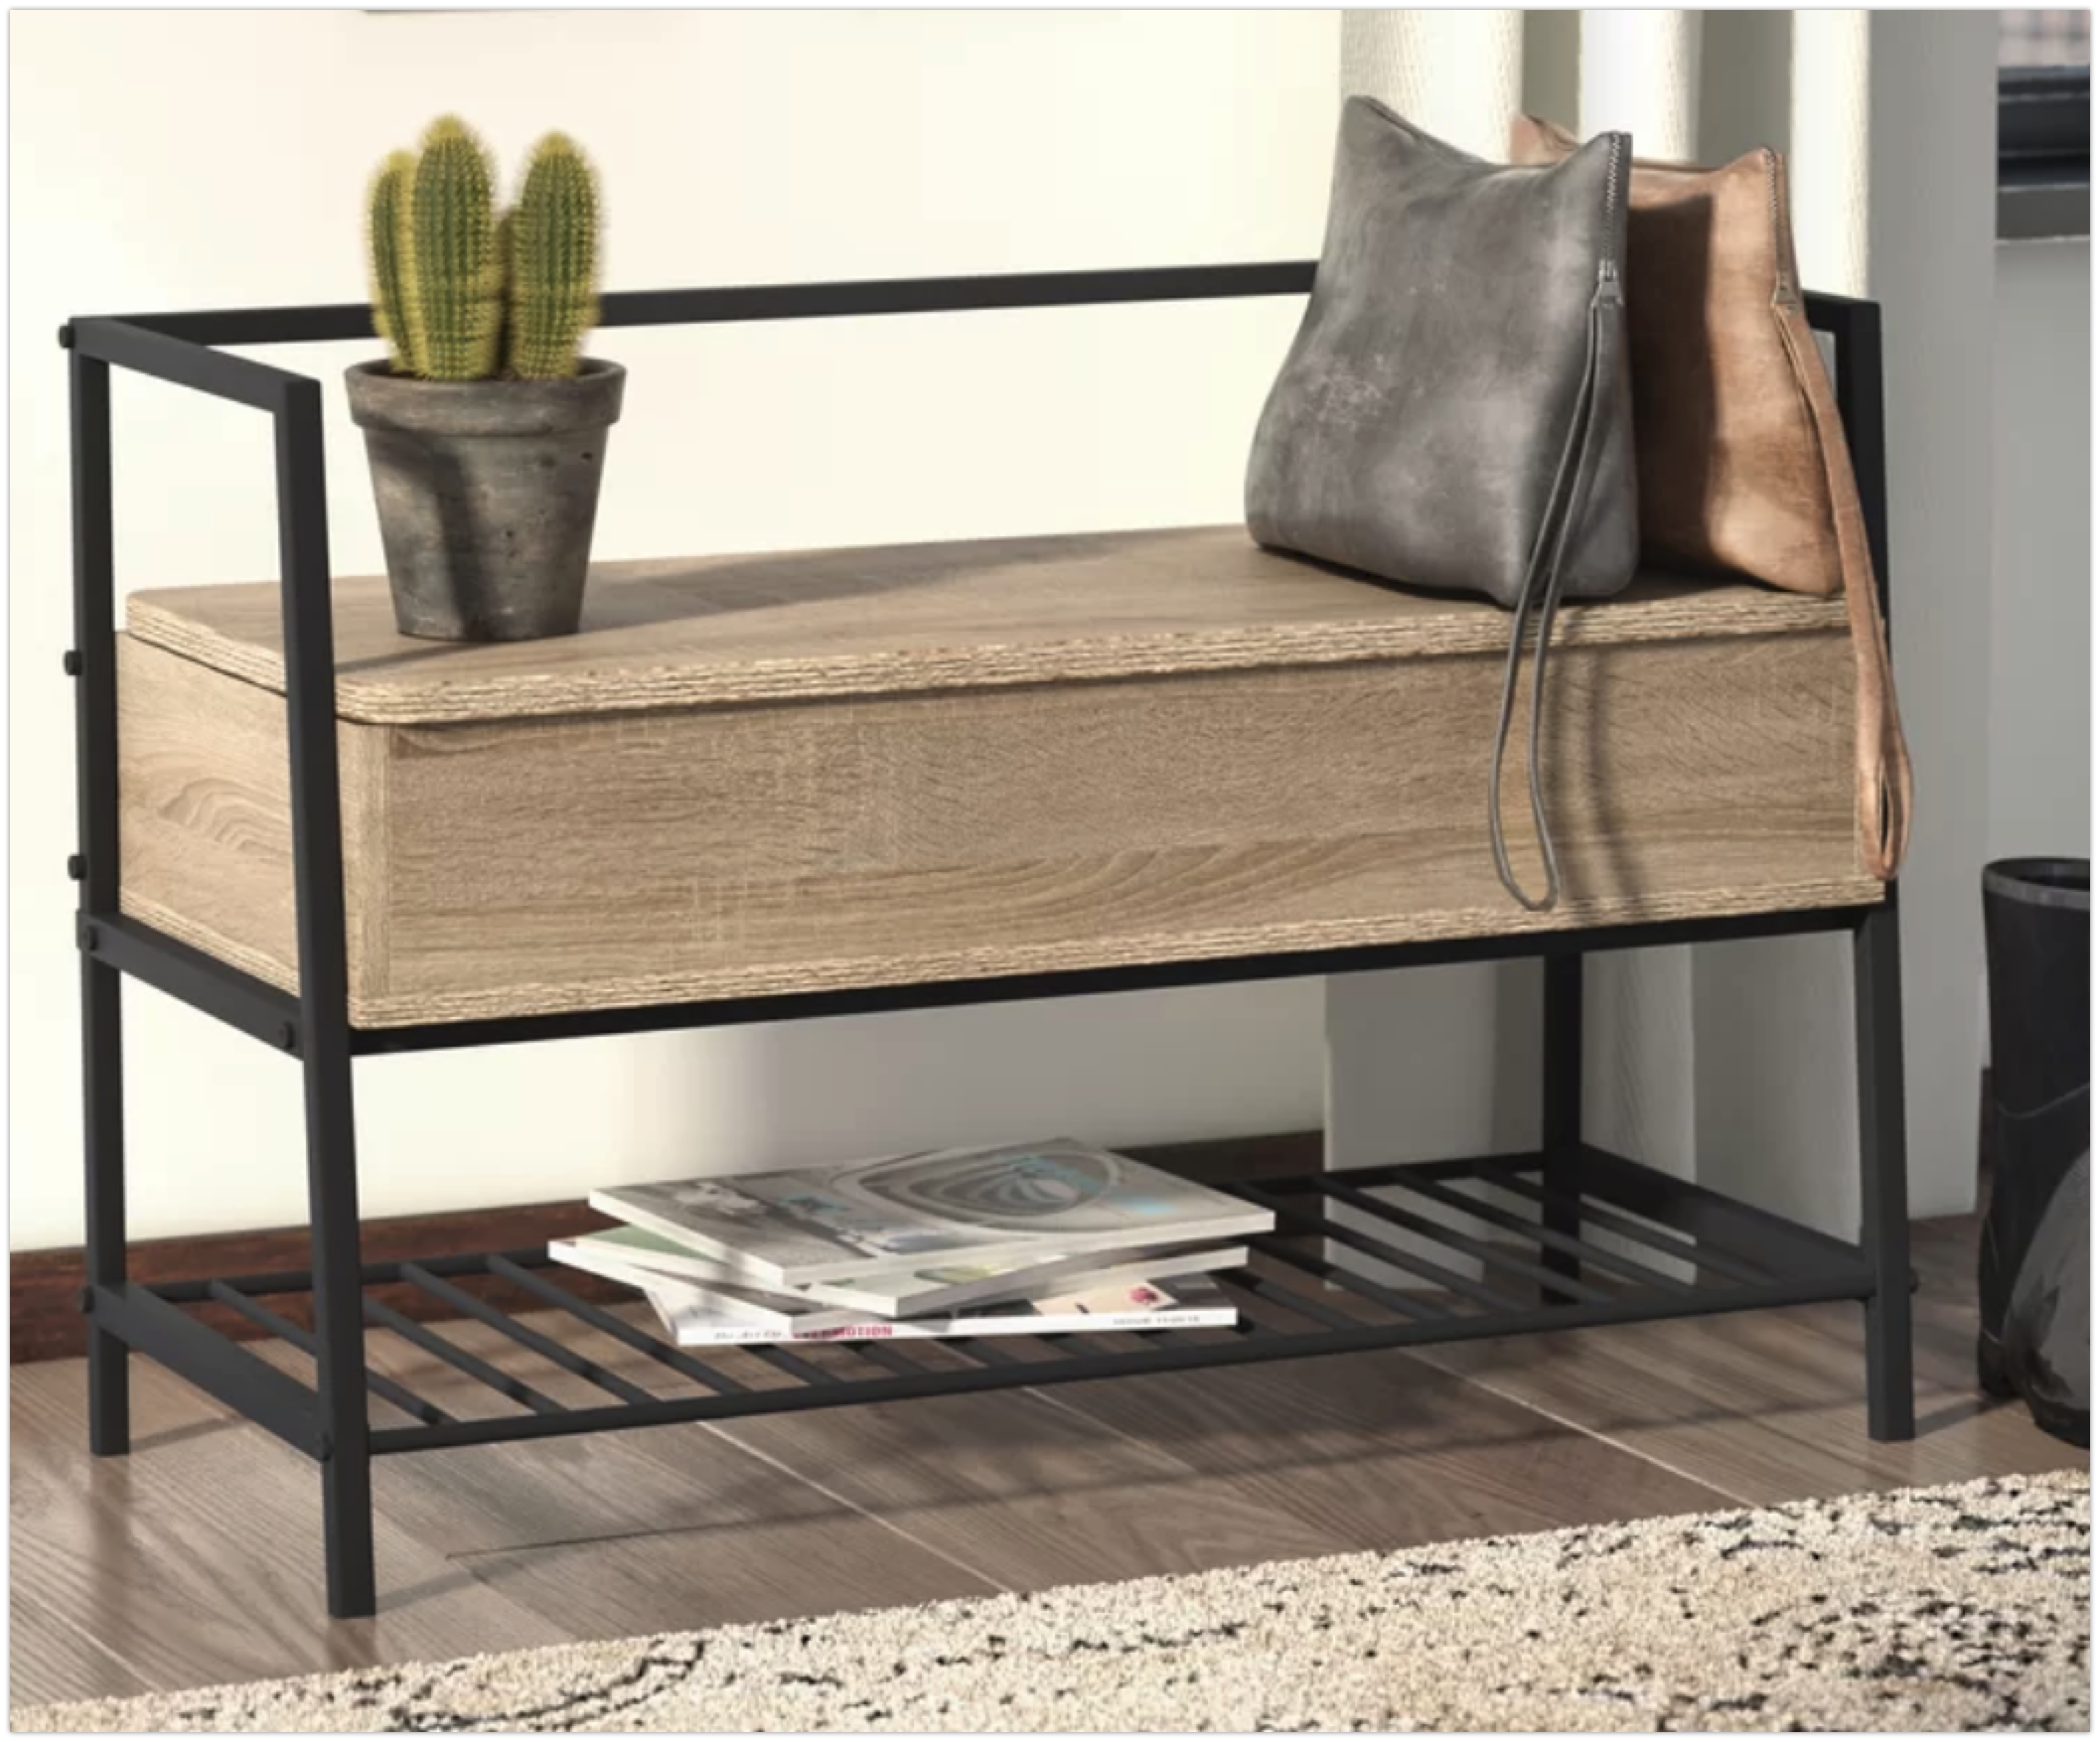 ermont-storage-bench